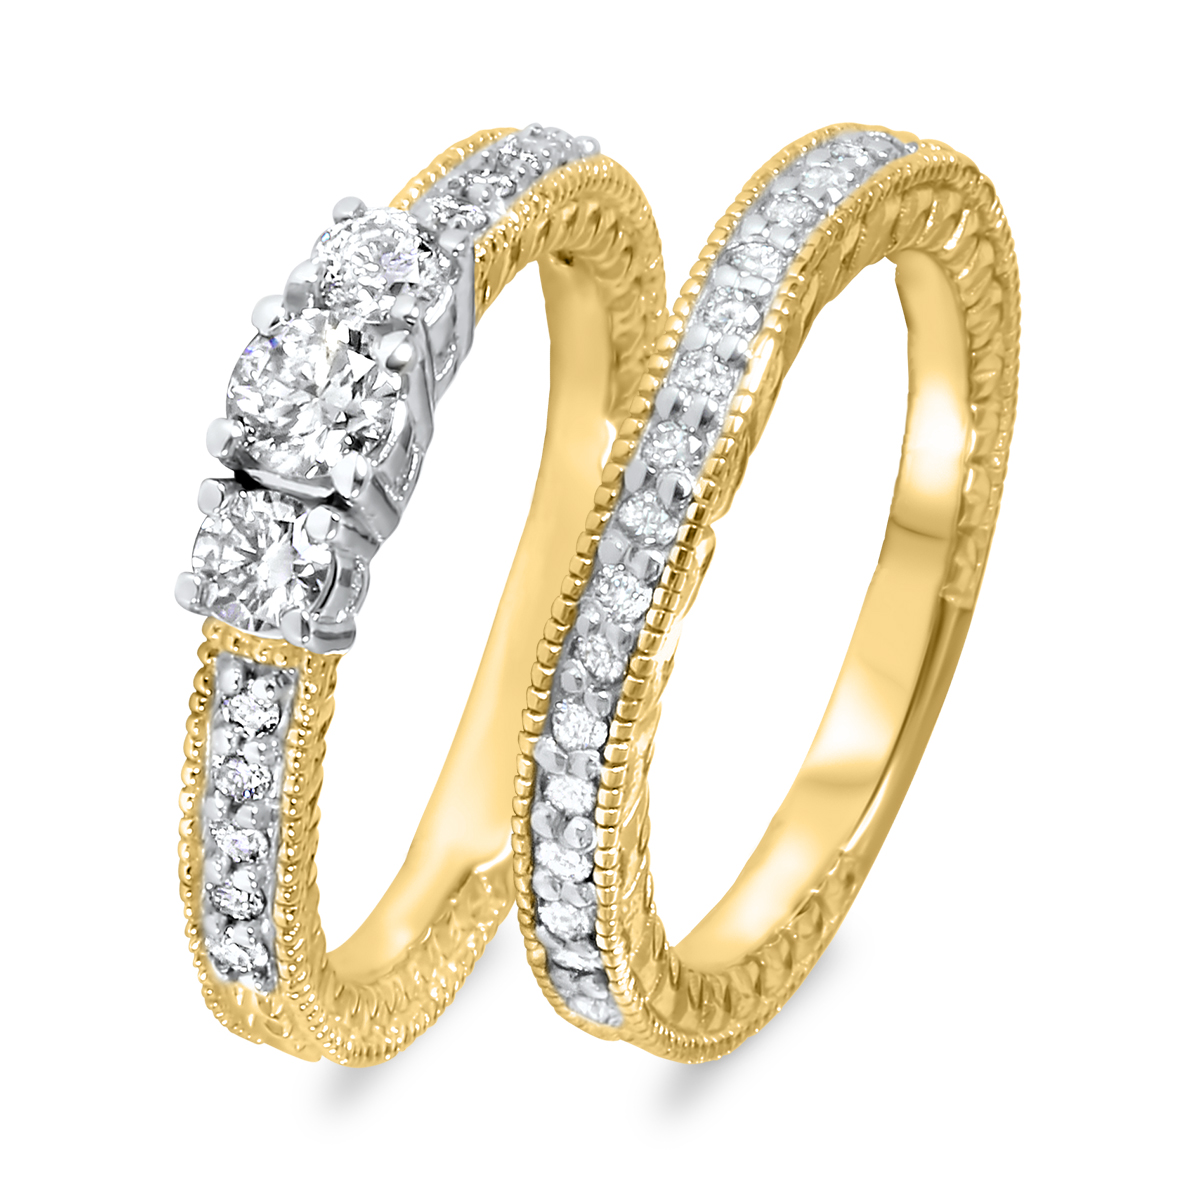 2/3 CT. T.W. Round Cut Diamond Ladies Bridal Wedding Ring Set 10K Yellow Gold